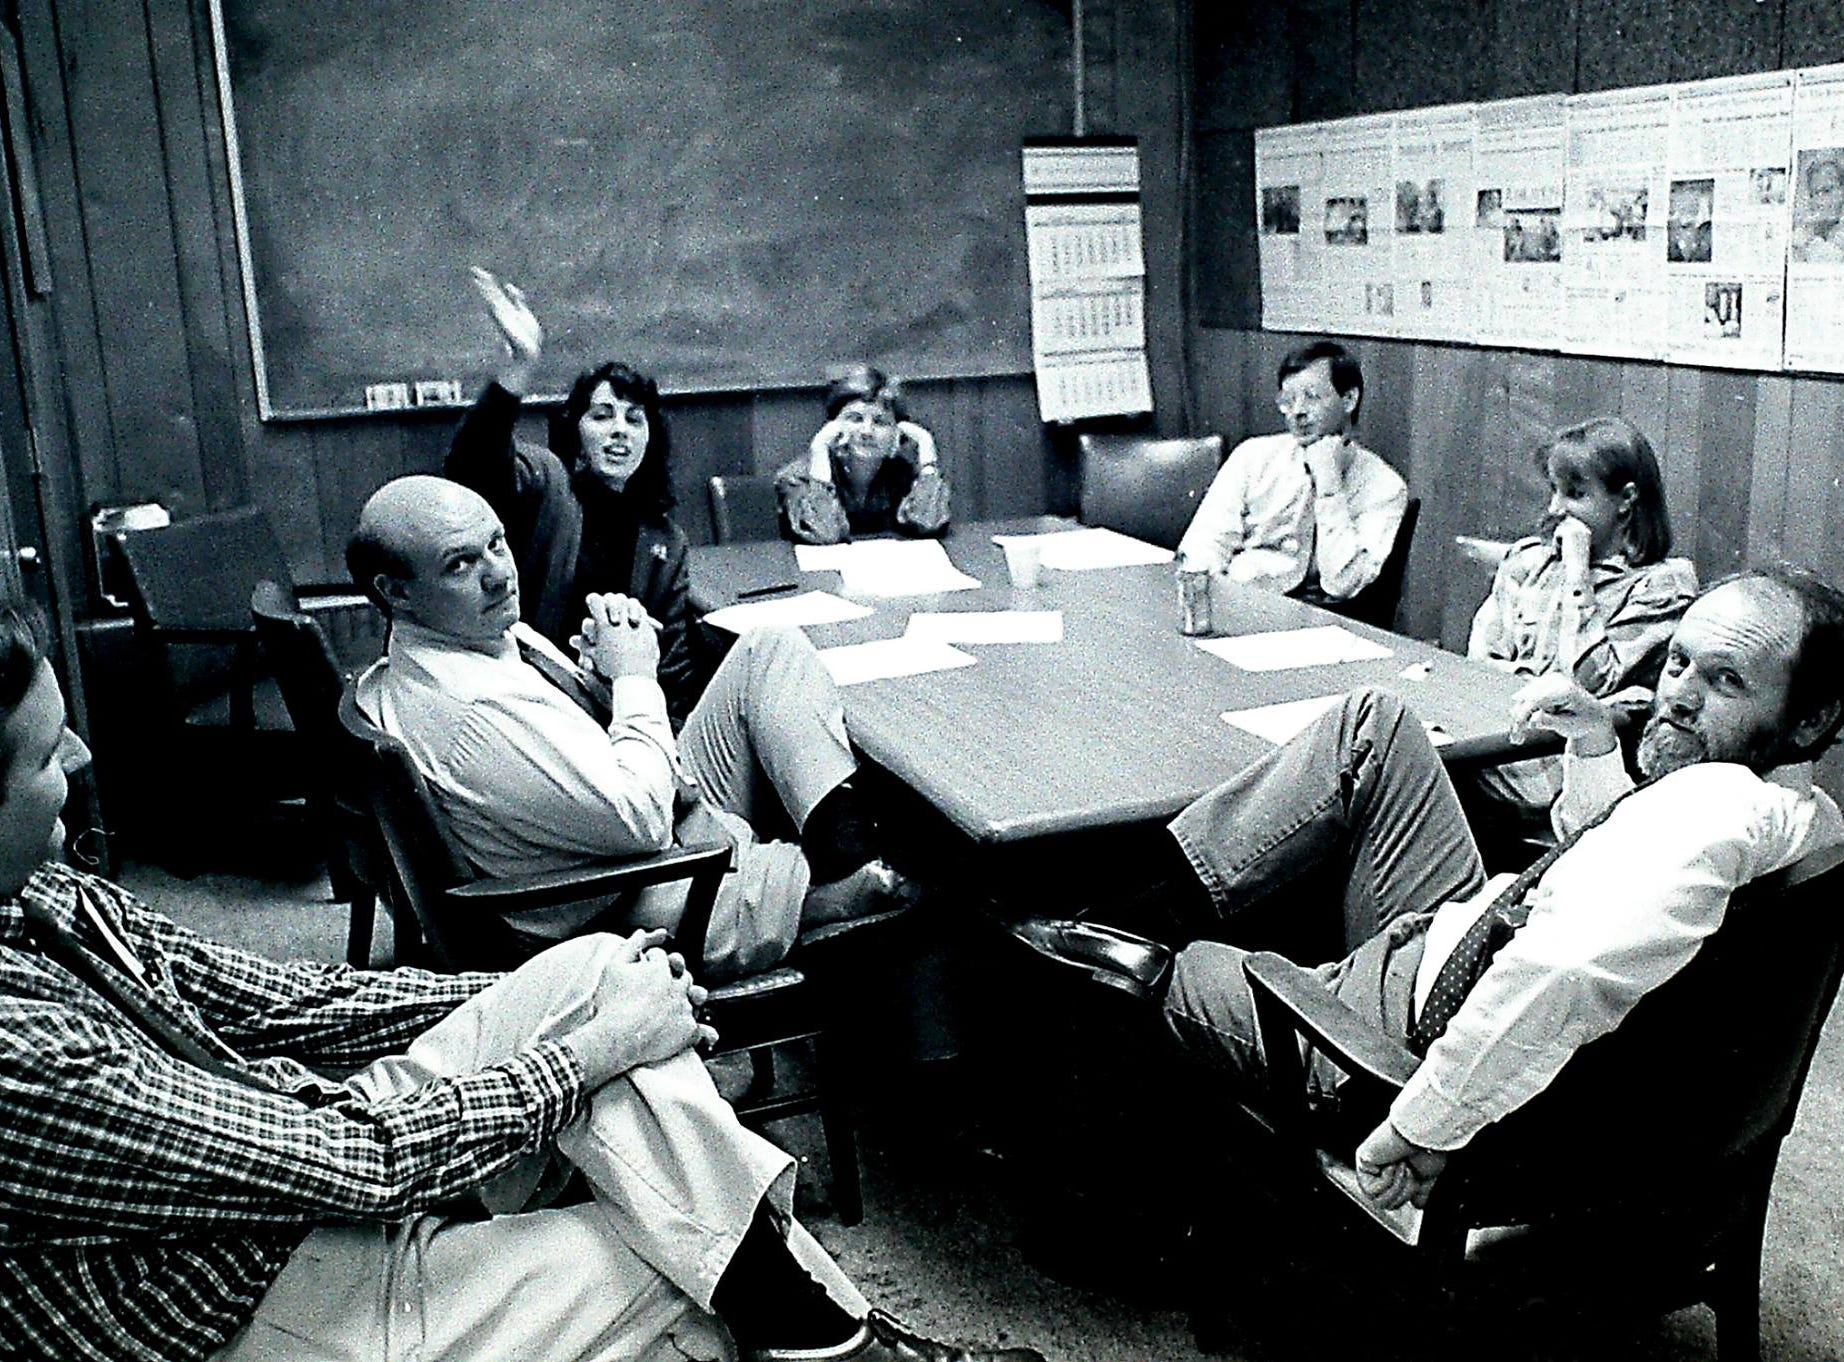 News-Sentinel news meeting circa 1990 with Bob Norris, left, Vince Vawter, Sonya Doctorian, Linda Fields, Jack Lail, Amy Nolan and Frank Cagle.